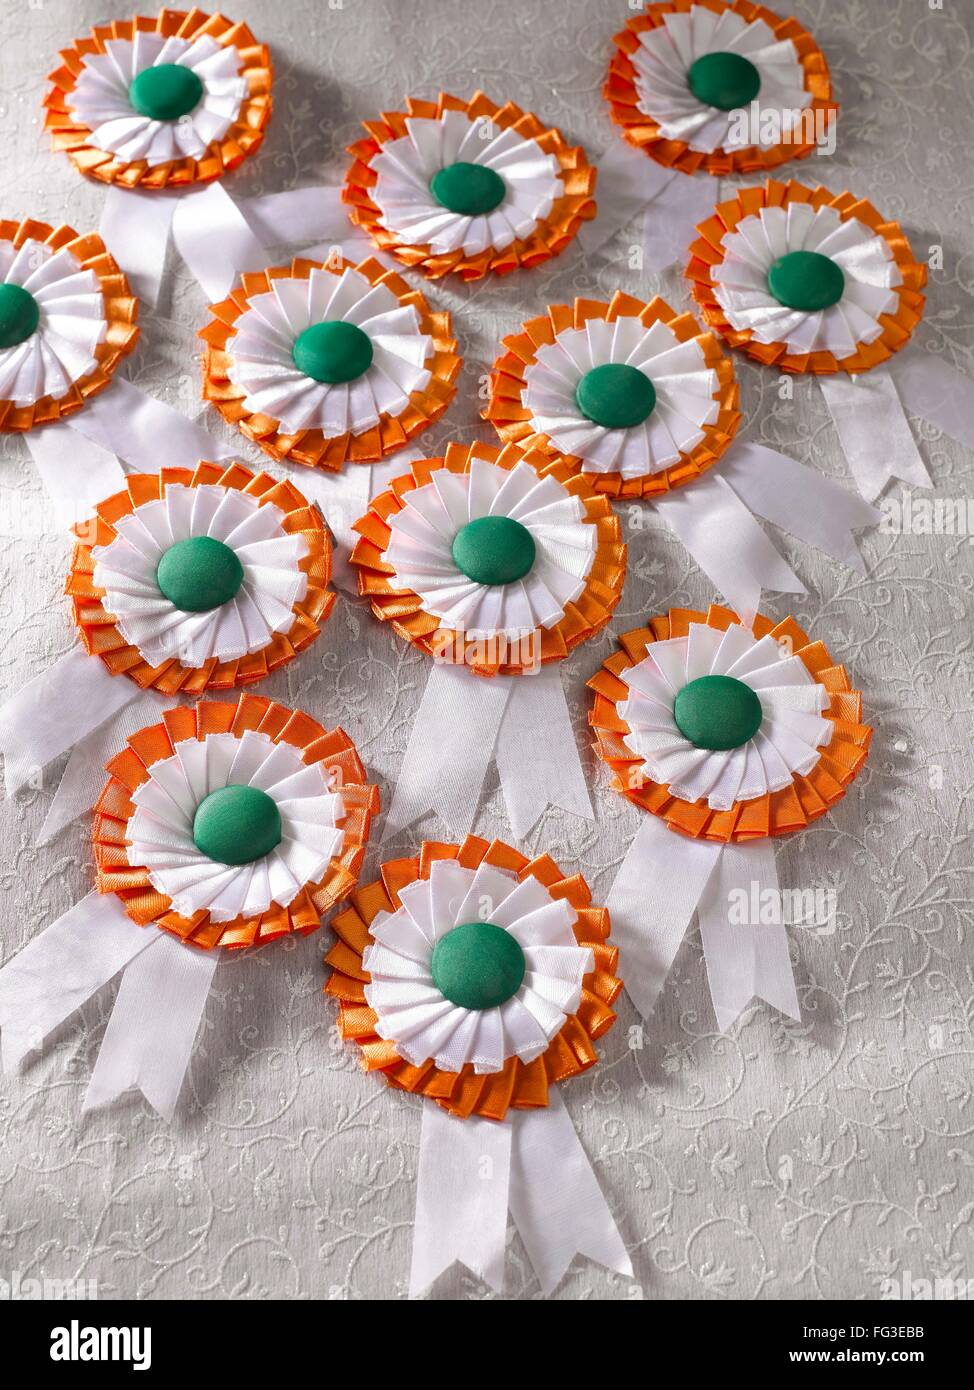 Indian National Flag Color Badge On White Embroidery Cloth Stock